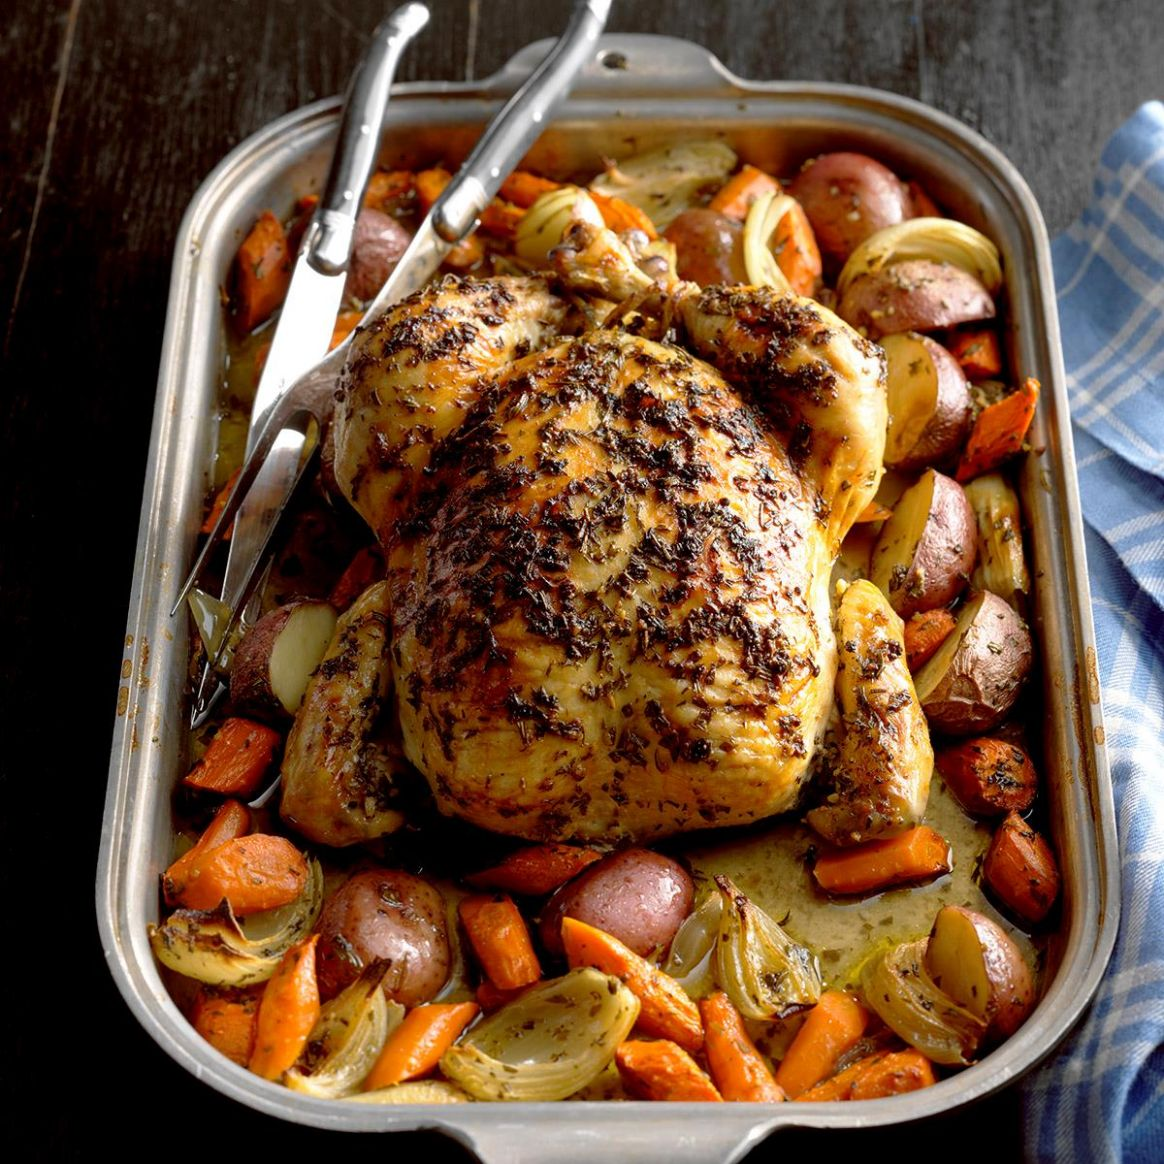 Roasted Chicken with Rosemary - Recipes Chicken Roast